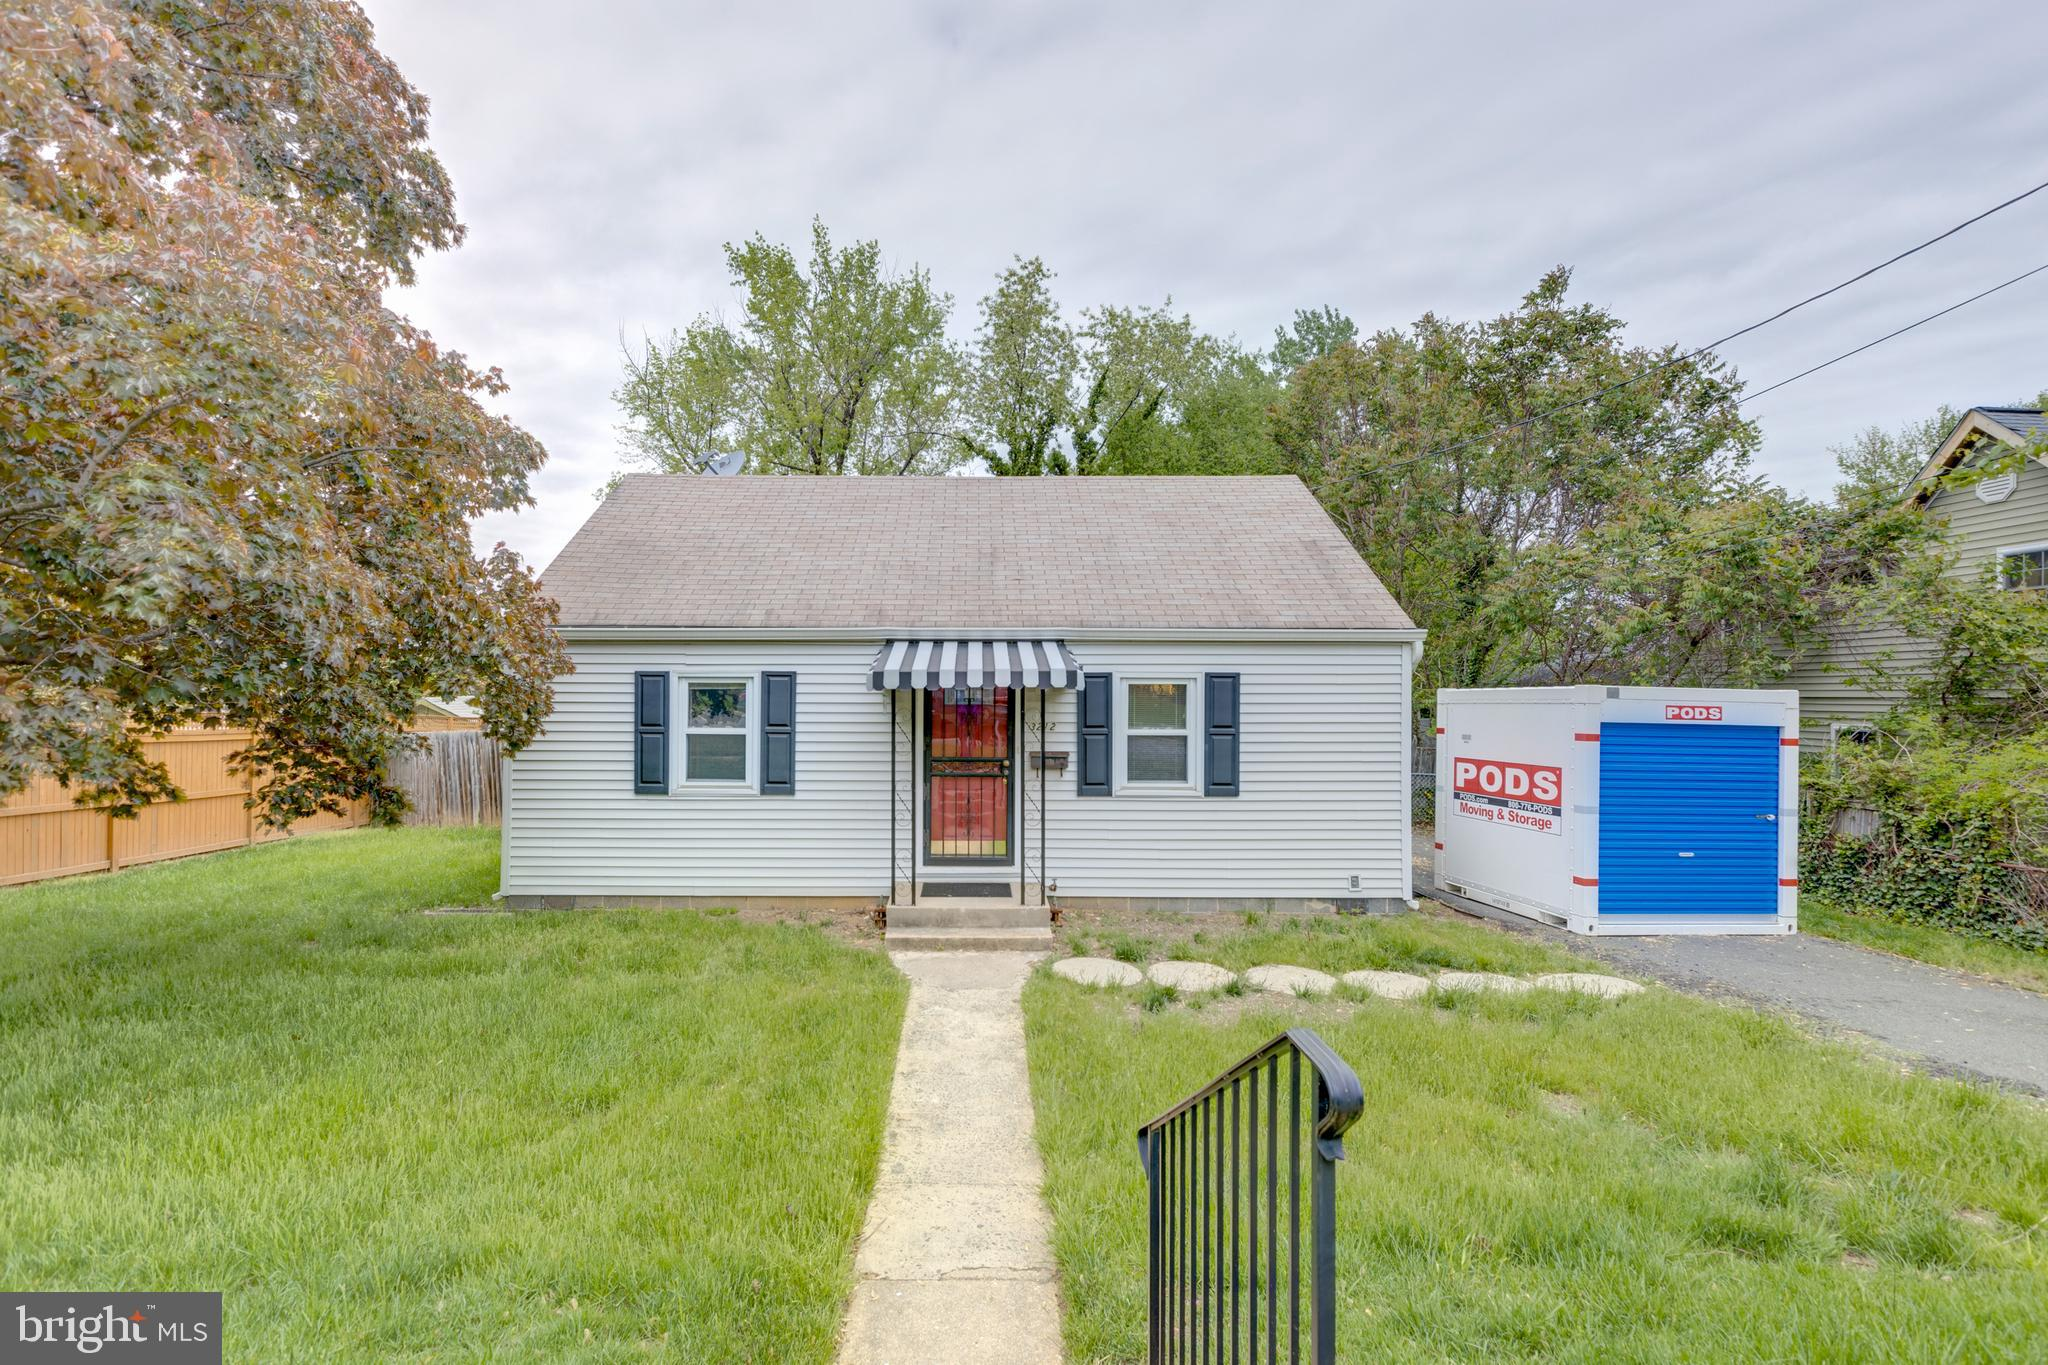 *Opportunity to Expand / Remodel / Build in an Incredible Location*Sold AS-IS but Inspections Welcomed*Huntington Metro 5-10 min Drive Away*Bus Stops on Burgundy Rd*Short Drive to Old Town Alexandria, National Harbor, Huntley Meadows Park*Easy Commute to D.C via GW Pkwy, Rt 1, I495* Convenient to Ft. Belvoir, DCA, Pentagon, Andrews AFB, Shops (Whole Foods, Wegmans, Target, Lowes, Home Depot), AMC Theater, Restaurants, etc* Walk to Elementary School* Updated Windows & Hot Water Heater*Crawl Space Professionally Water-Proofed*Addition = Family Room & Office Space*